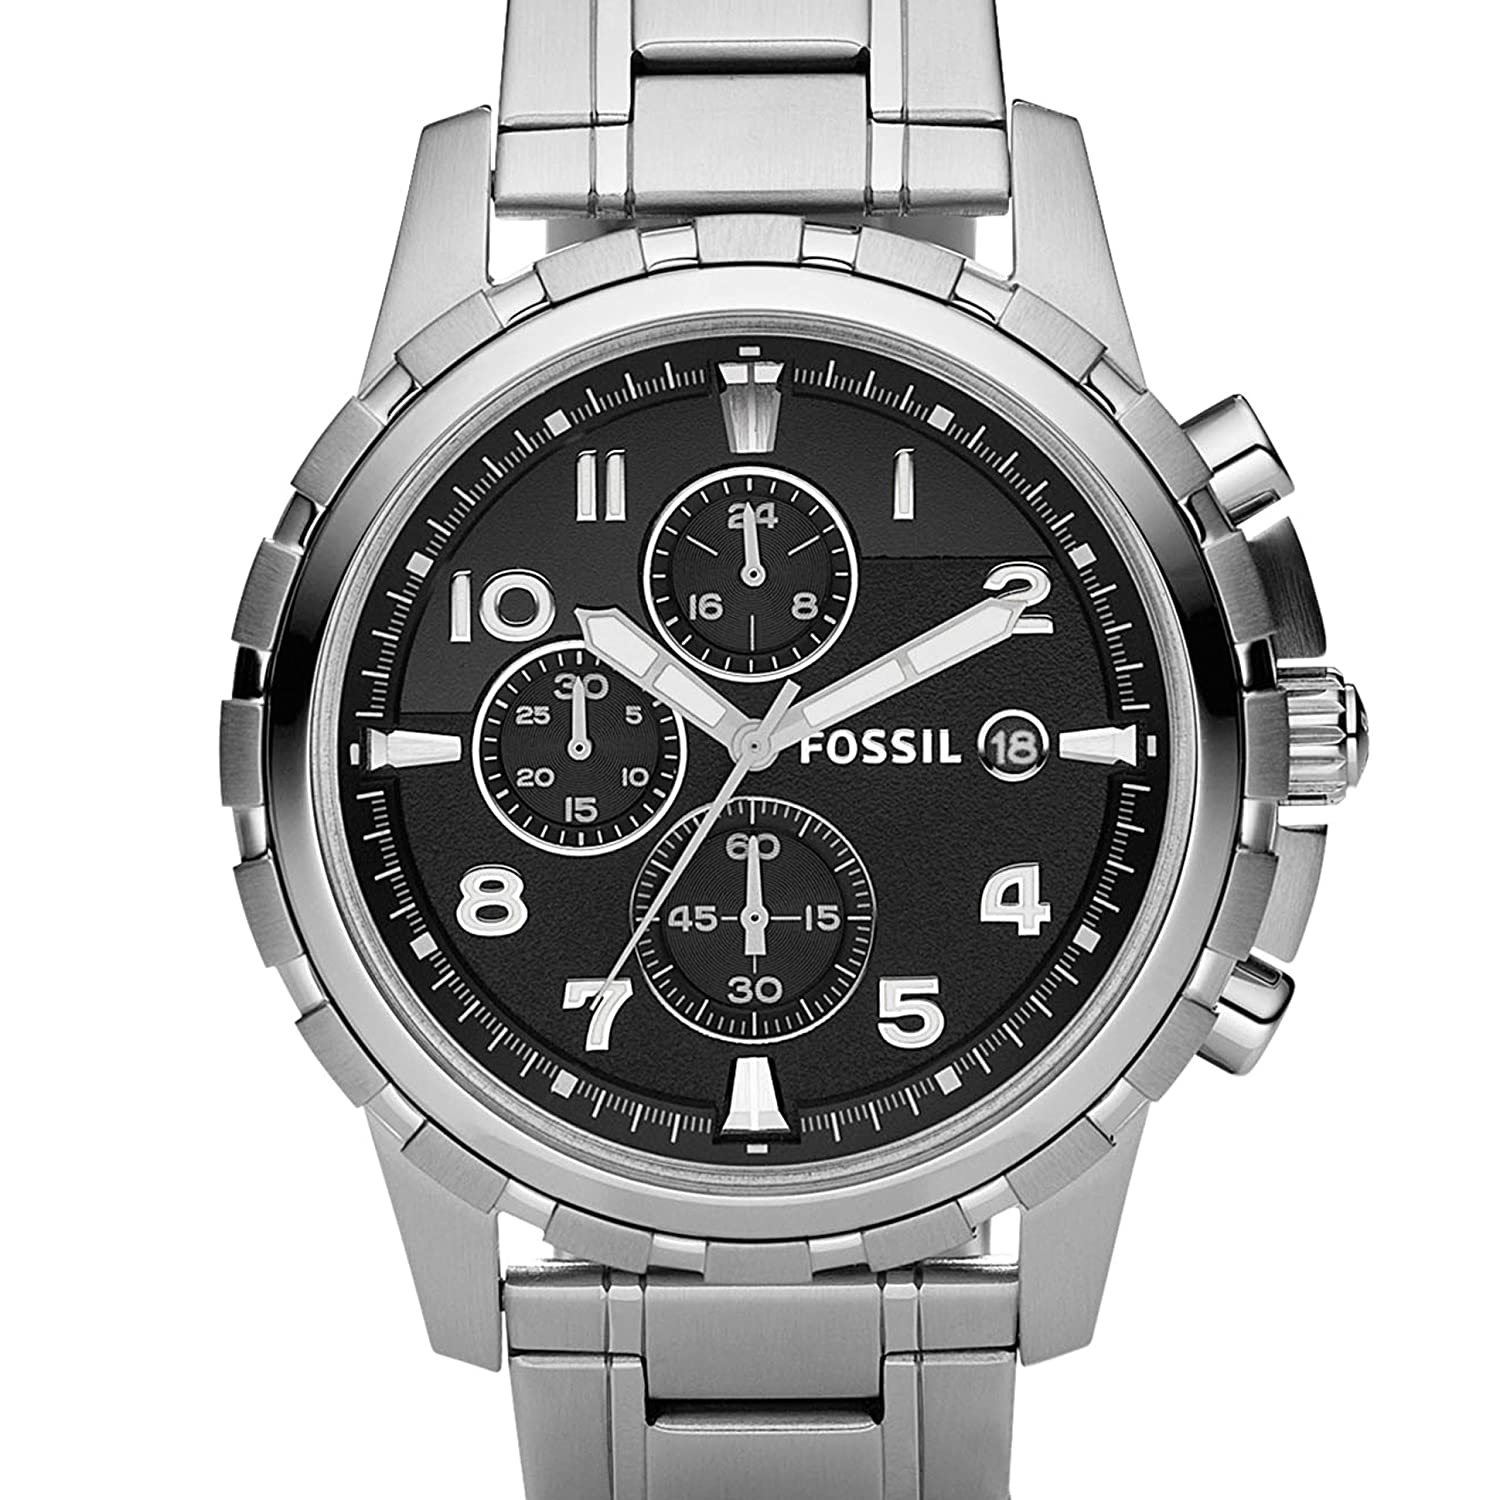 a4b019c37 Buy Fossil Analog Black Dial Men's Watch - FS4542 Online at Low Prices in  India - Amazon.in